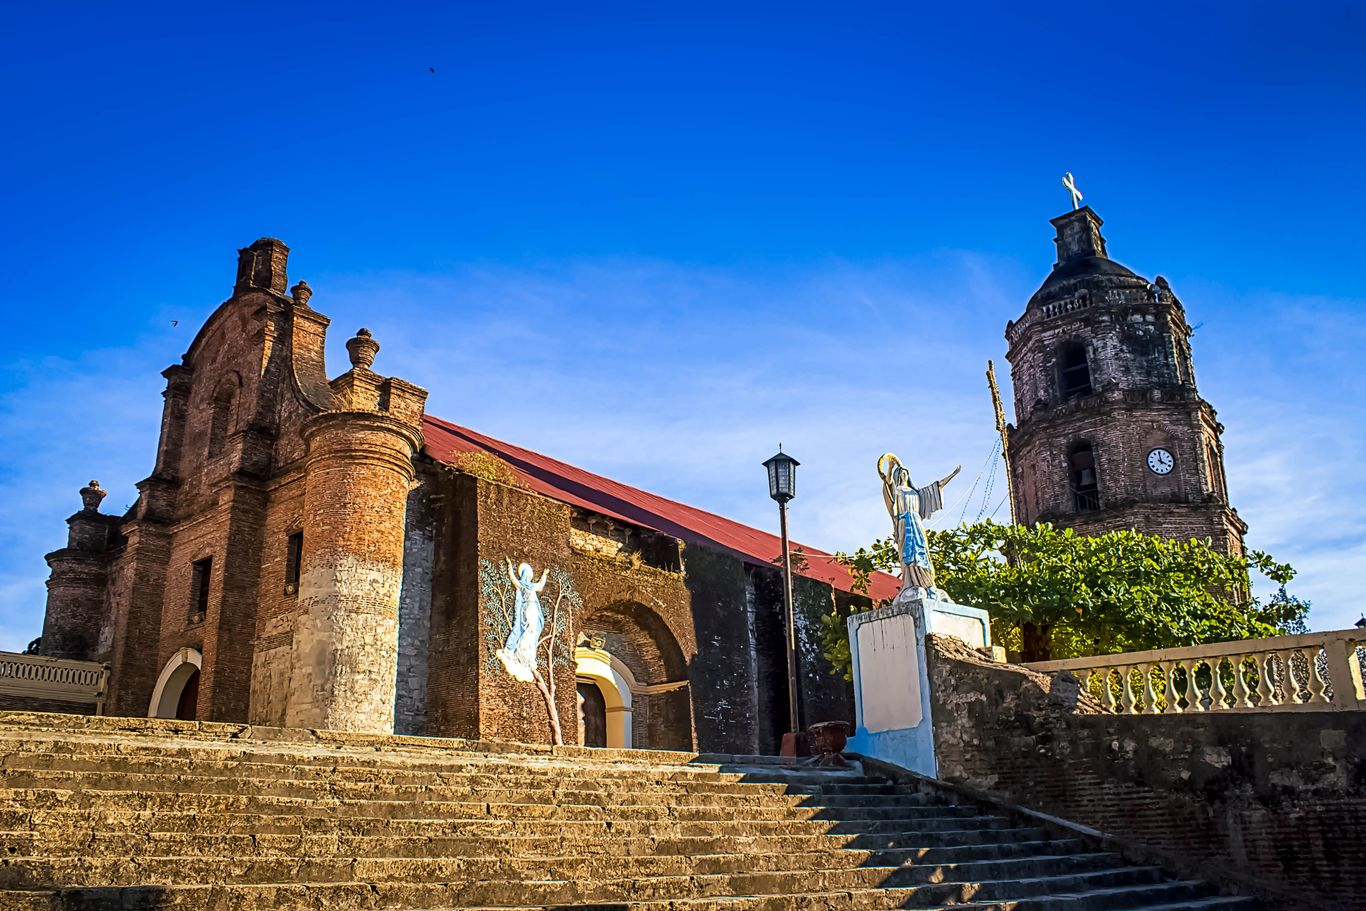 Stairs leading to the old brick church of Santa Maria, one of the UNESCO World Heritage Sites in the Philippines